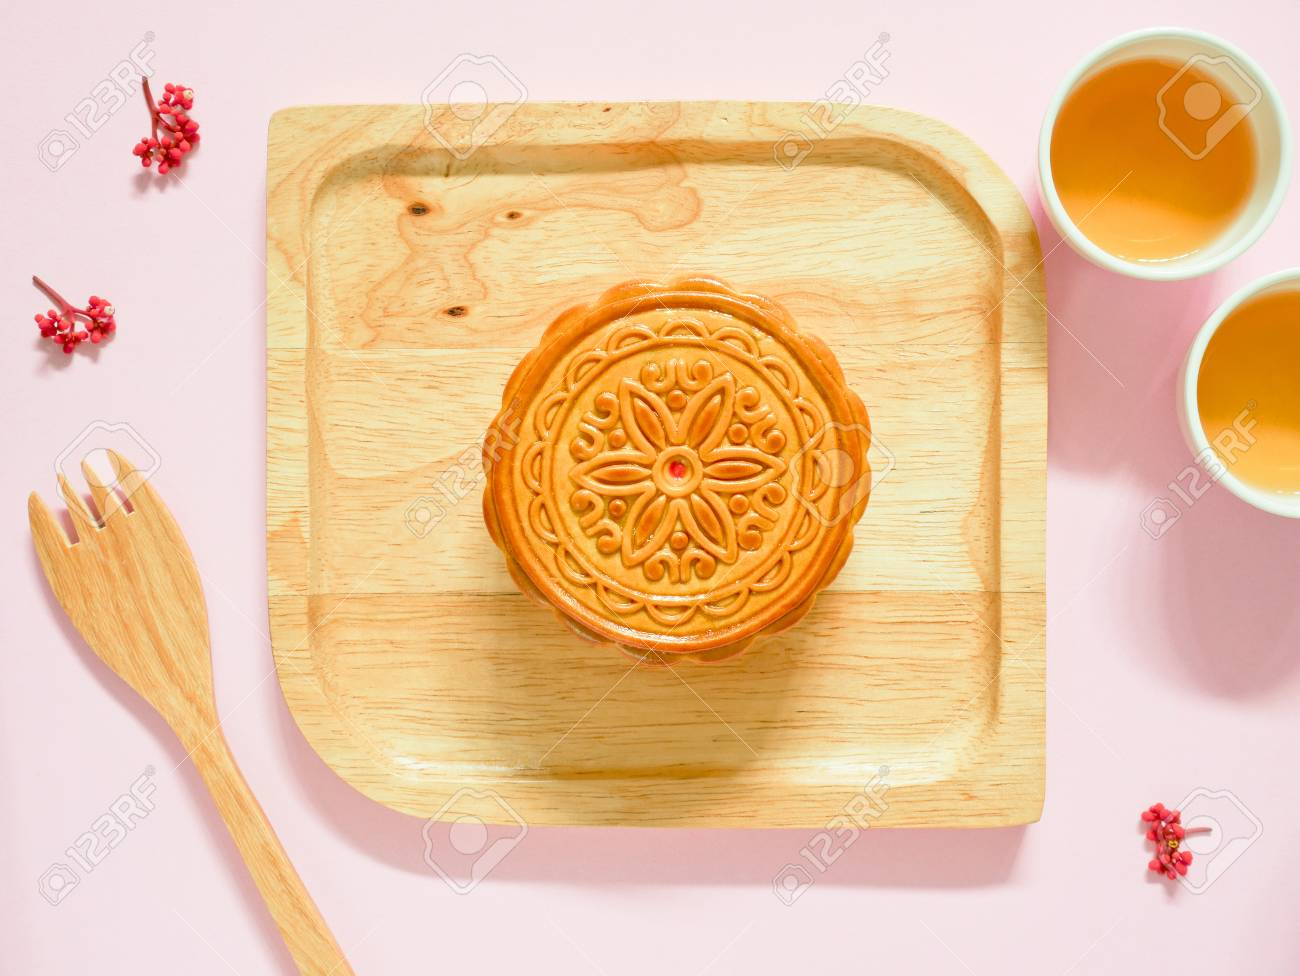 Mooncake on a wooden plate for Mid-Autumn Festival or Mooncake Festival. Top view. - 86895931